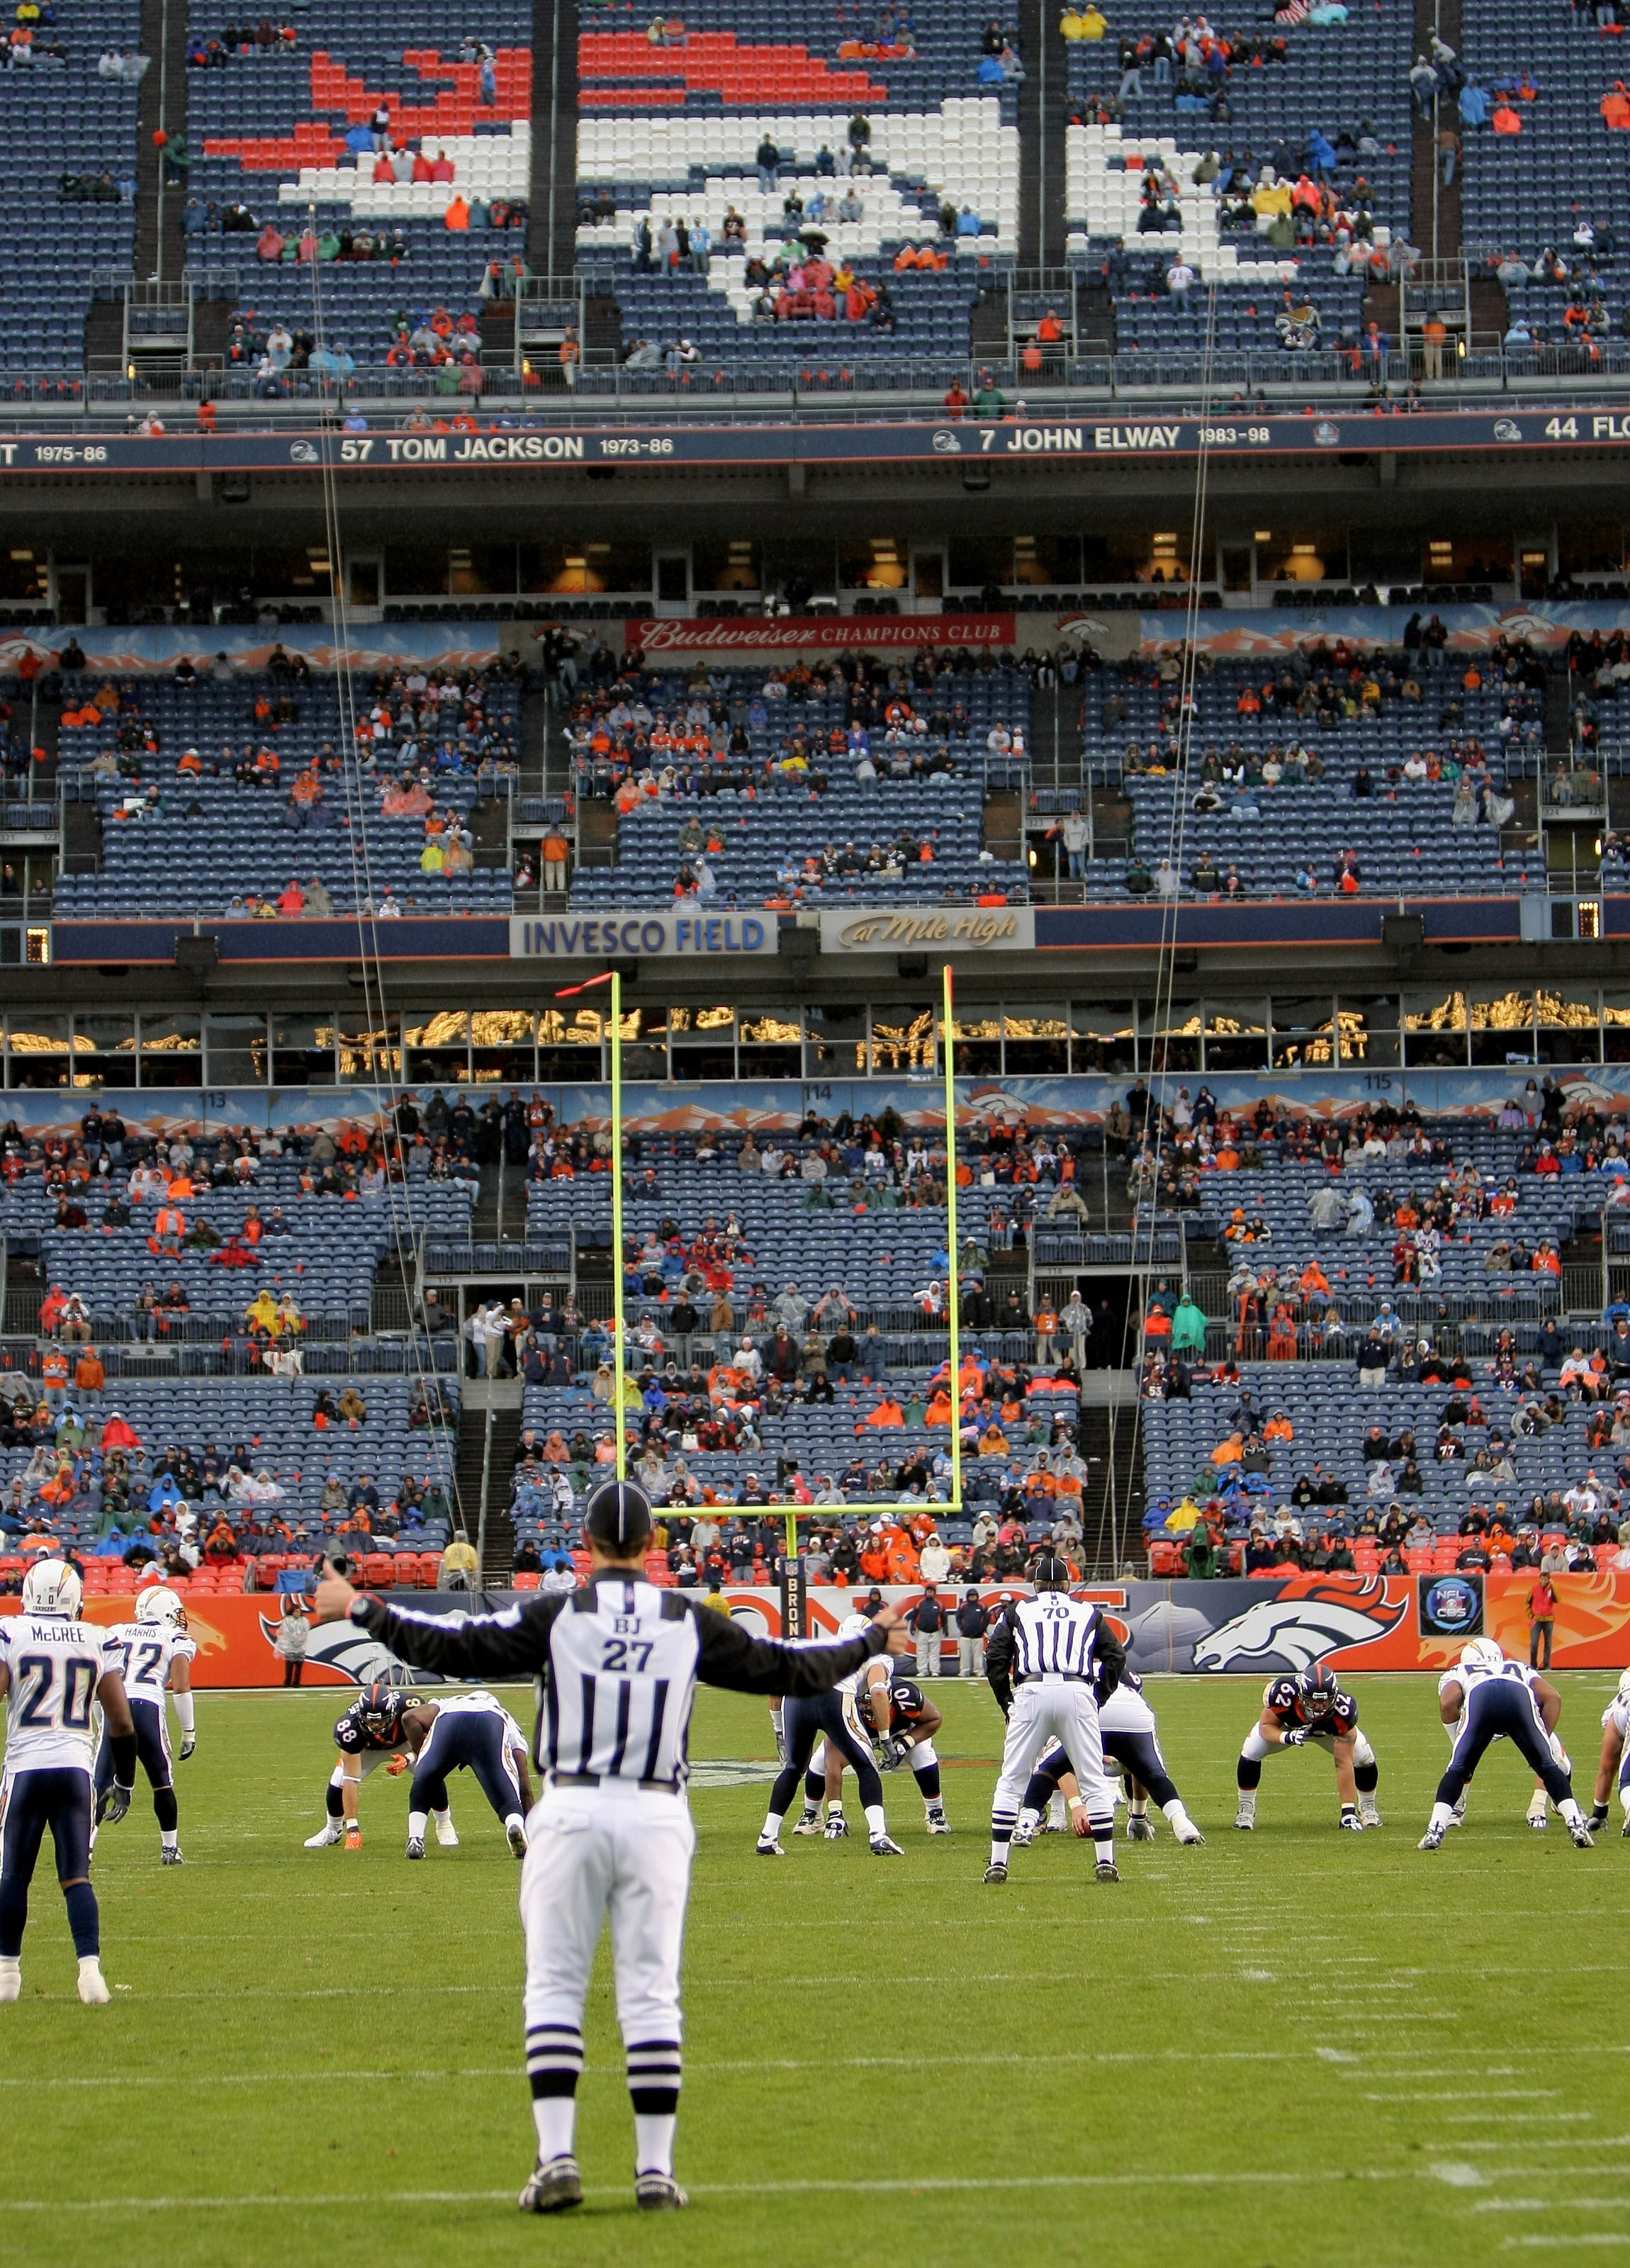 DENVER - OCTOBER 7:  The fans empty out of the stands in the fourth quarter as the San Diego Chargers defeated the Denver Broncos 41-3 at Invesco Field at Mile High on October 7, 2007 in Denver, Colorado.  (Photo by Doug Pensinger/Getty Images)